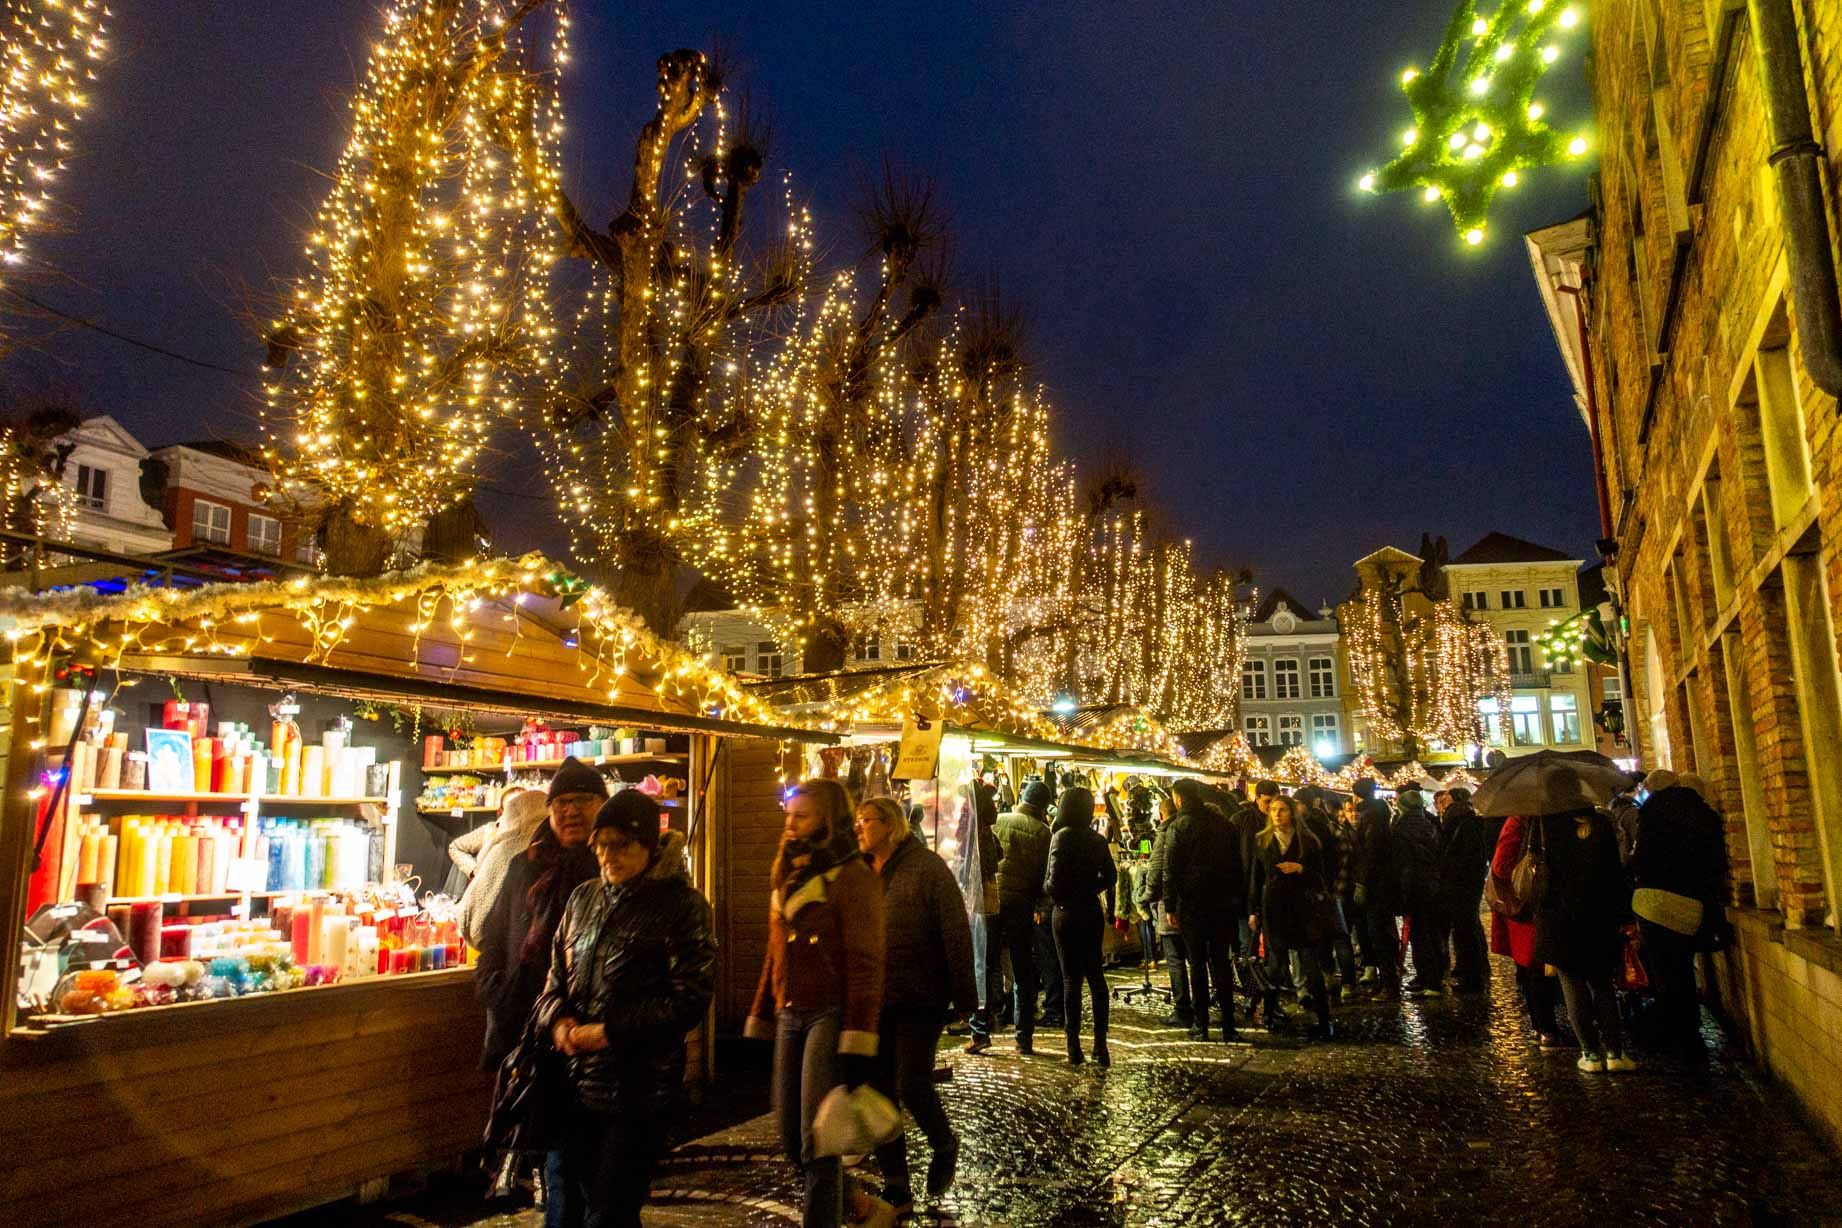 Shoppers peruse the offerings at the Bruges Christmas market at night